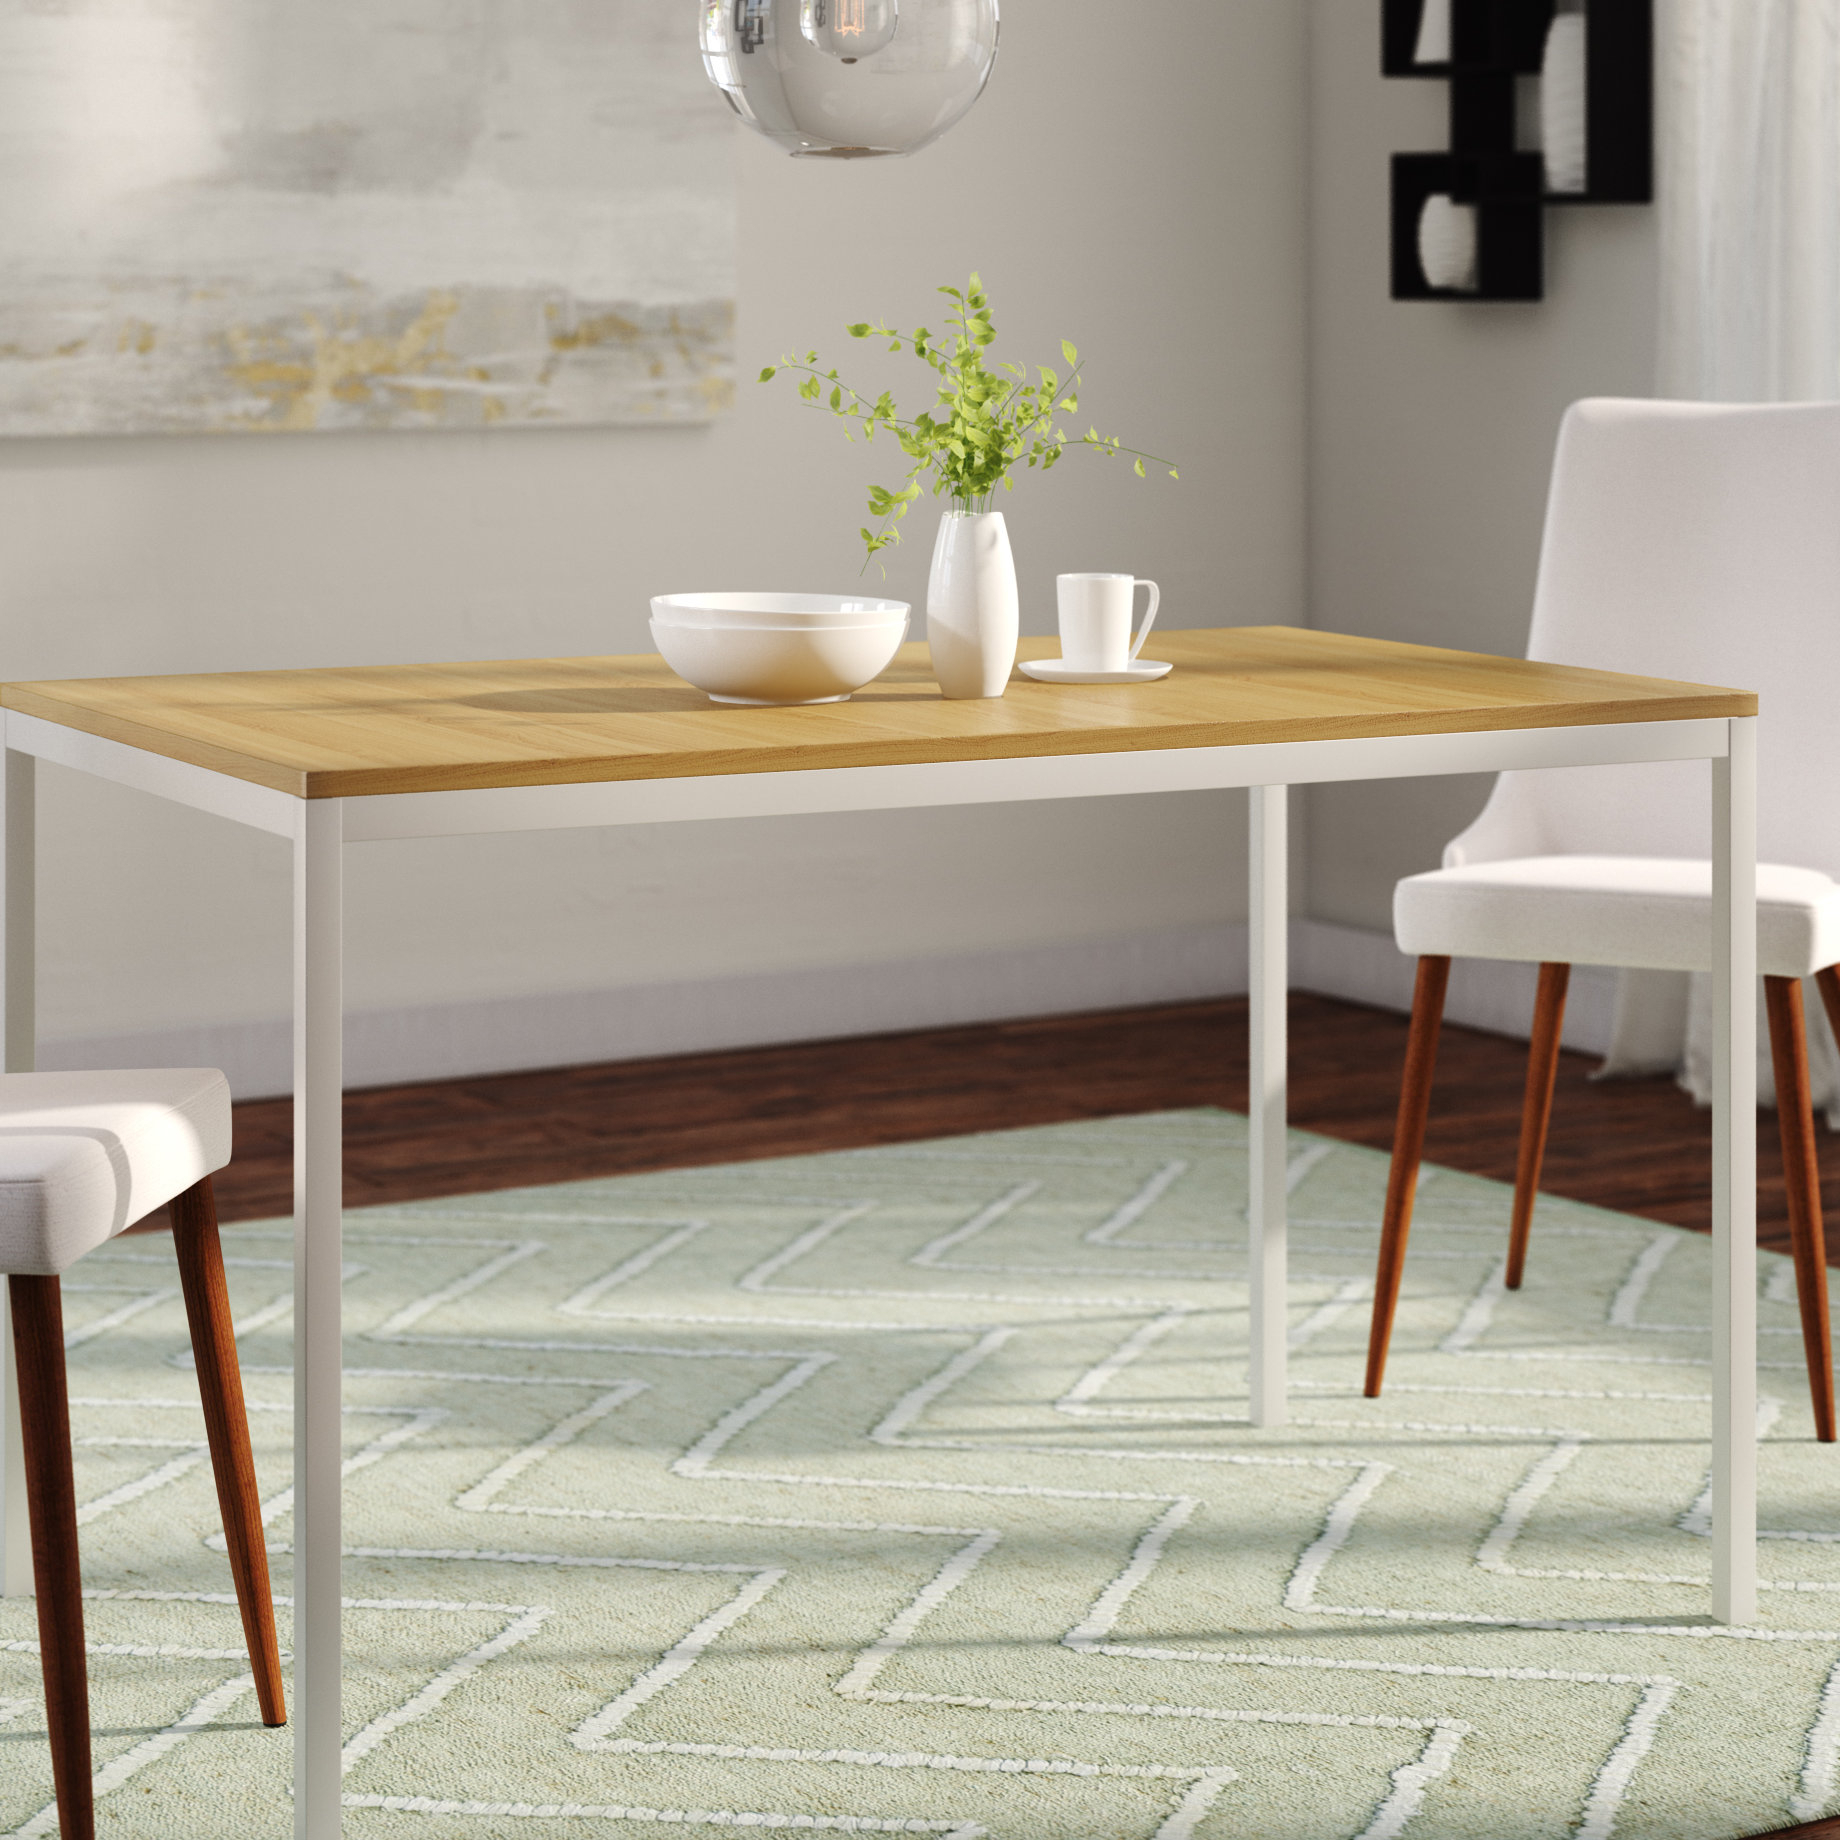 Chelmsford 3 Piece Dining Sets Pertaining To Famous Frida Dining Table (Gallery 18 of 20)